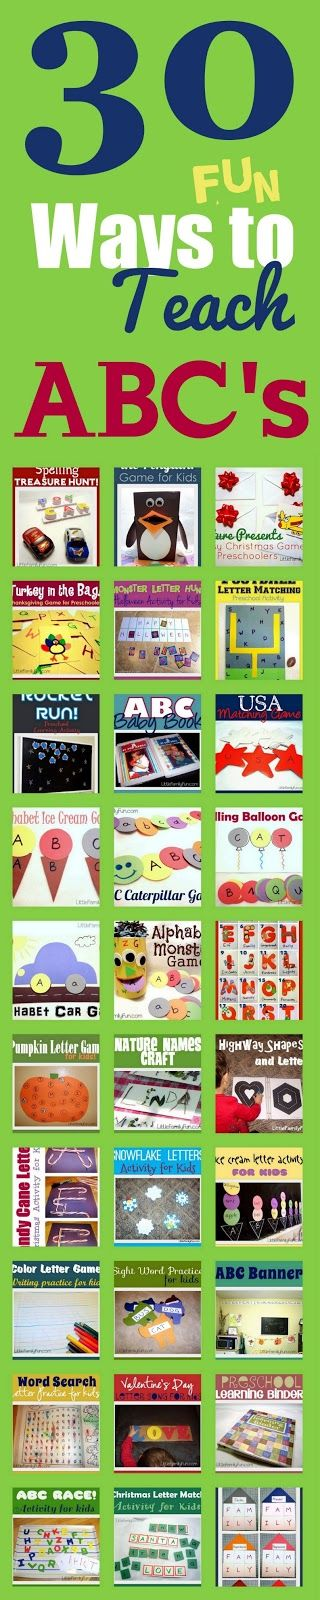 30 ABC Activities for Kids